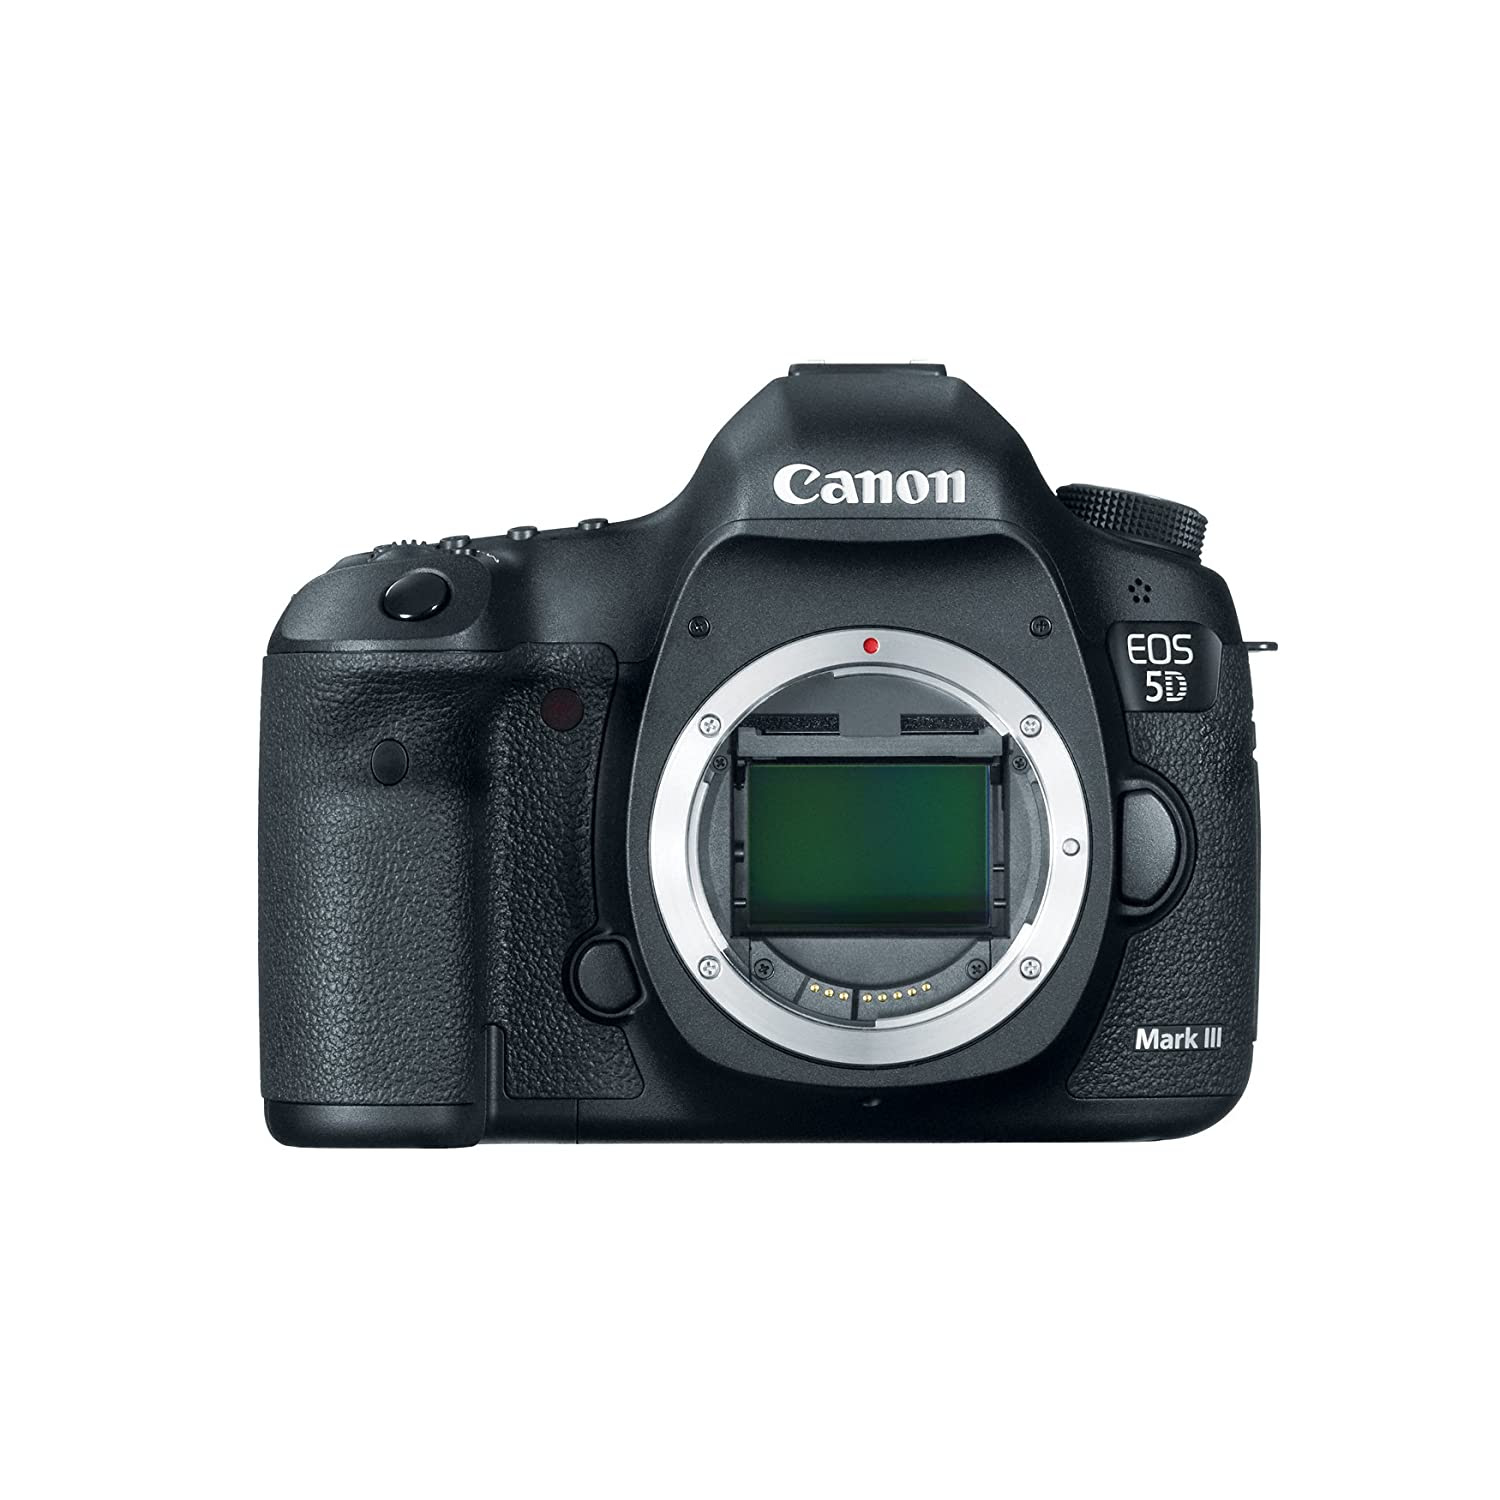 Best Seller Canon EOS 5D Mark III 22.3 MP Full Frame CMOS Digital SLR Camera Reviews